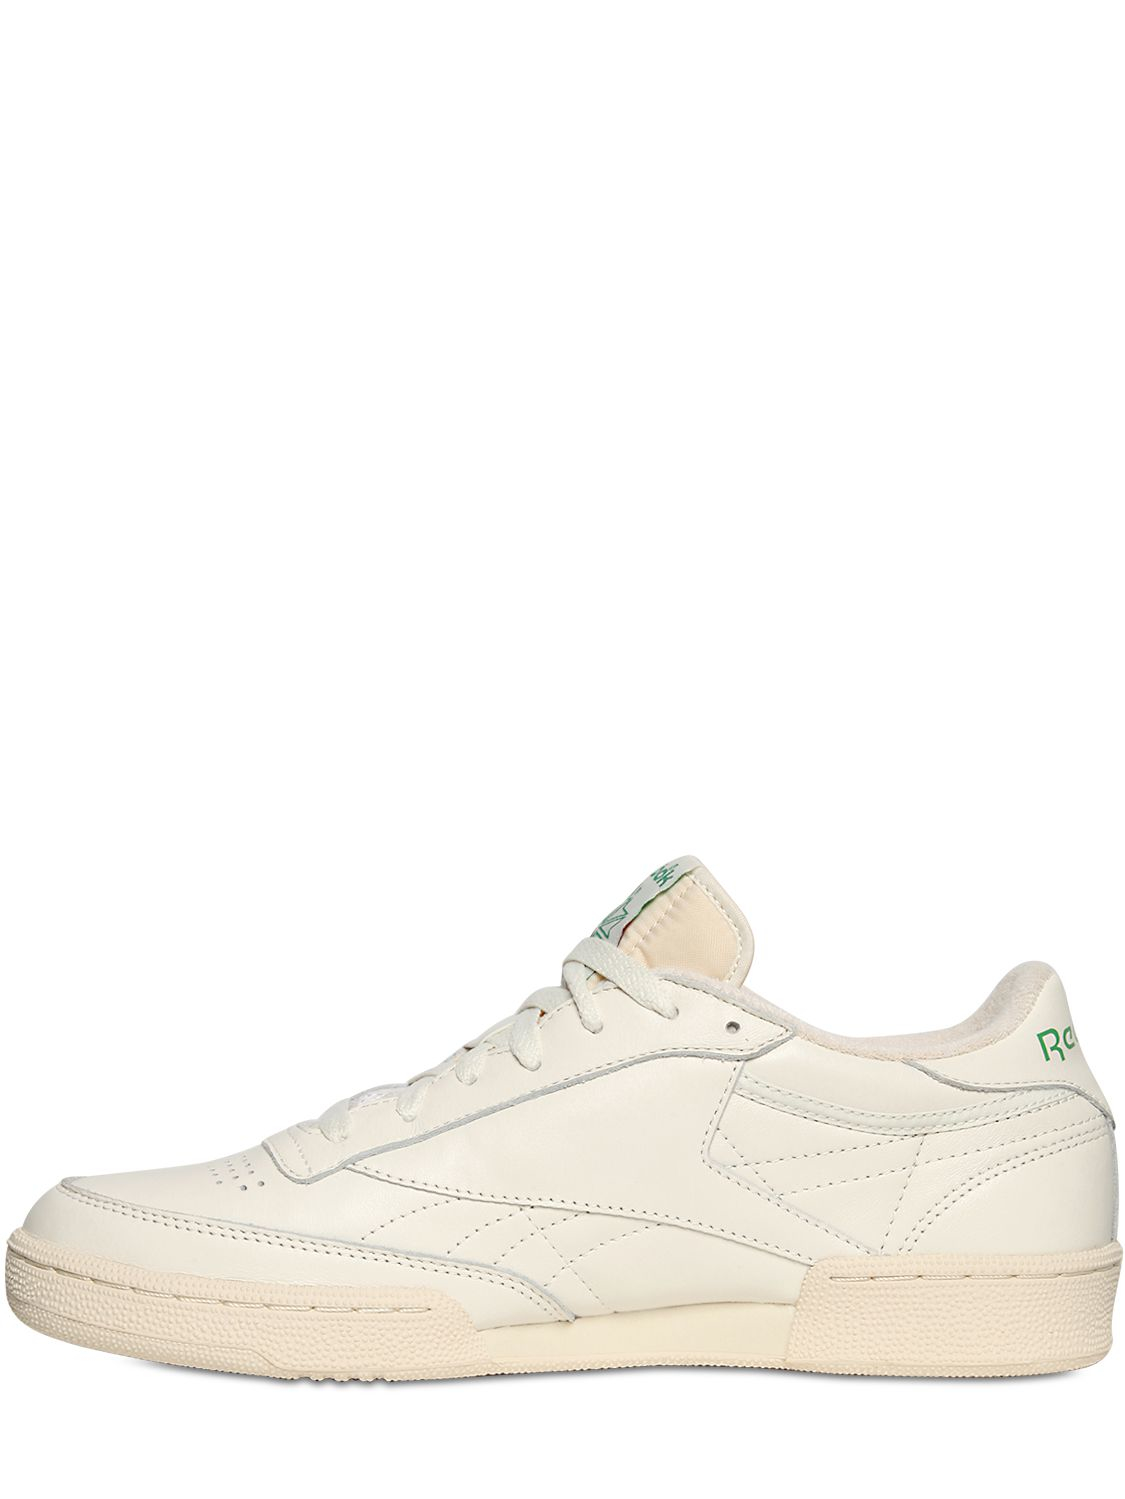 0d5ea8fa73e686 Lyst - Reebok Club C 85 Vintage Leather Low-Top Sneakers in White ...